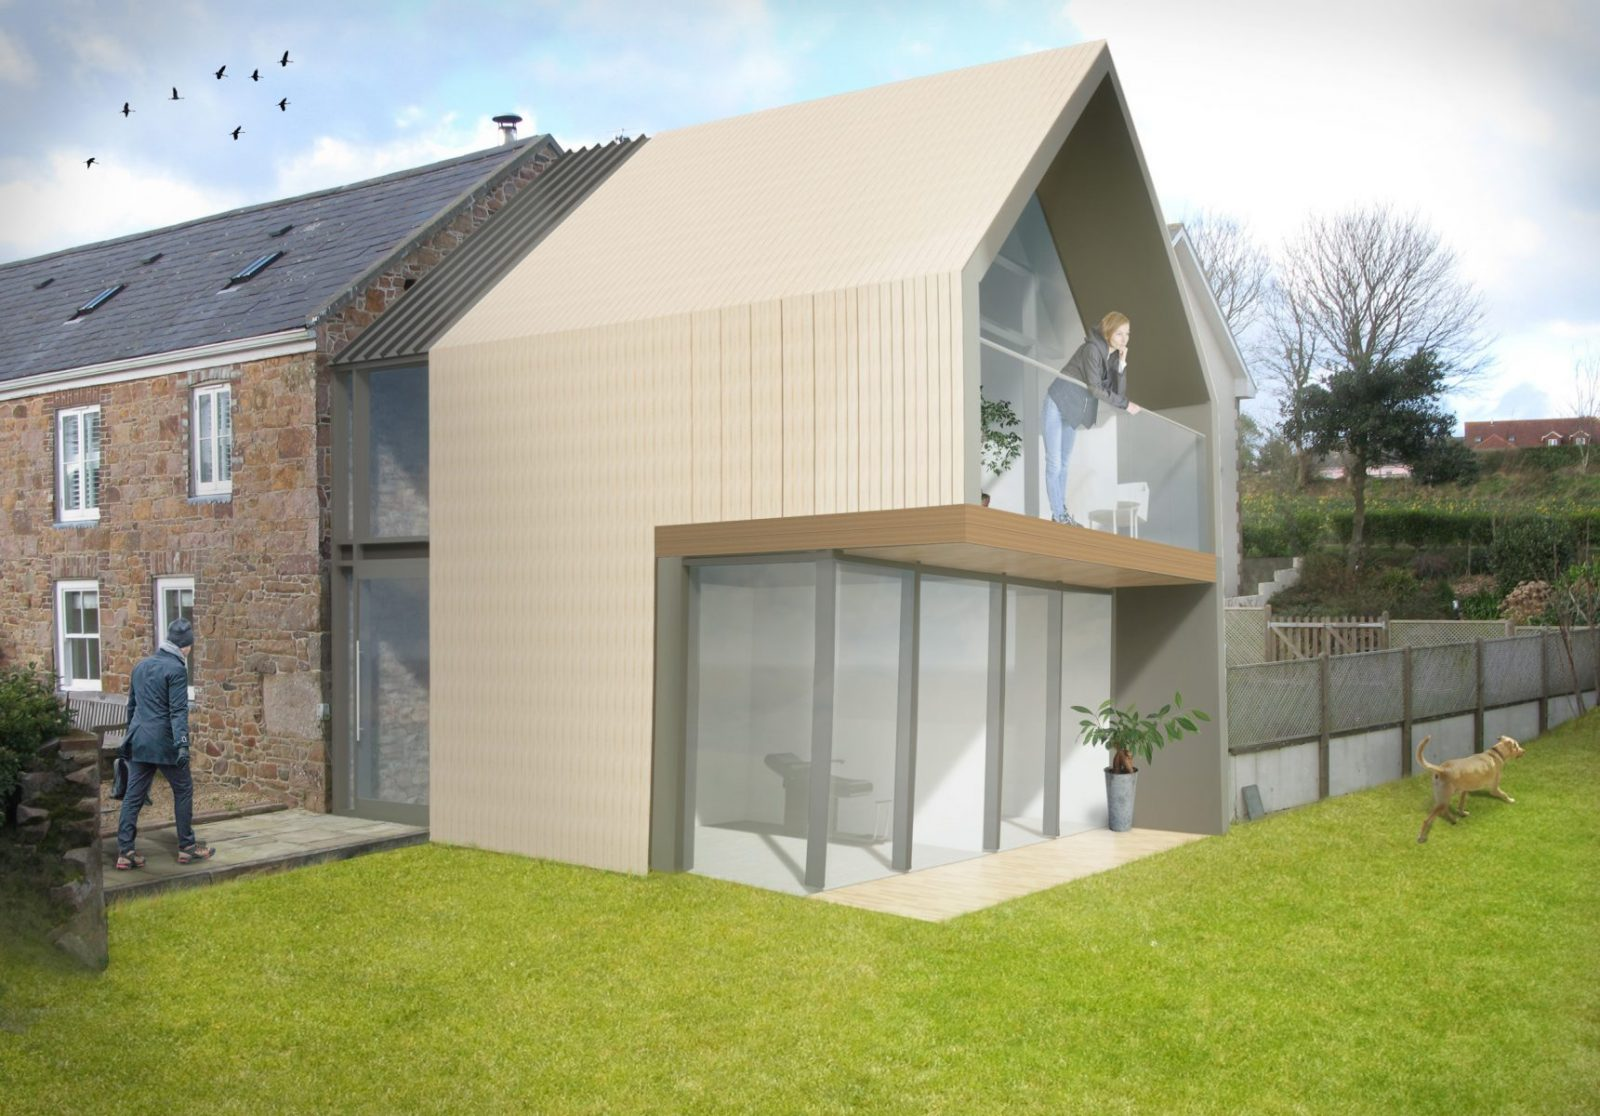 Jersey farm house listed modern extension architecture architects jersey architects1